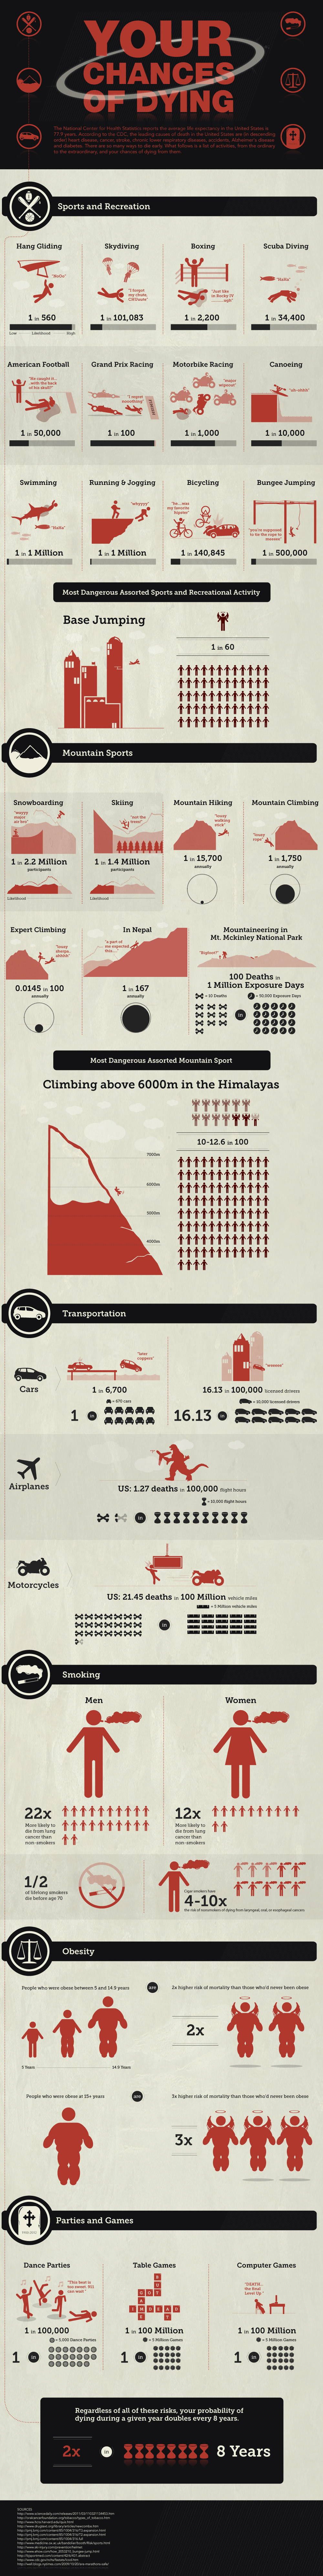 Risk Analysis of Death! - Infographic